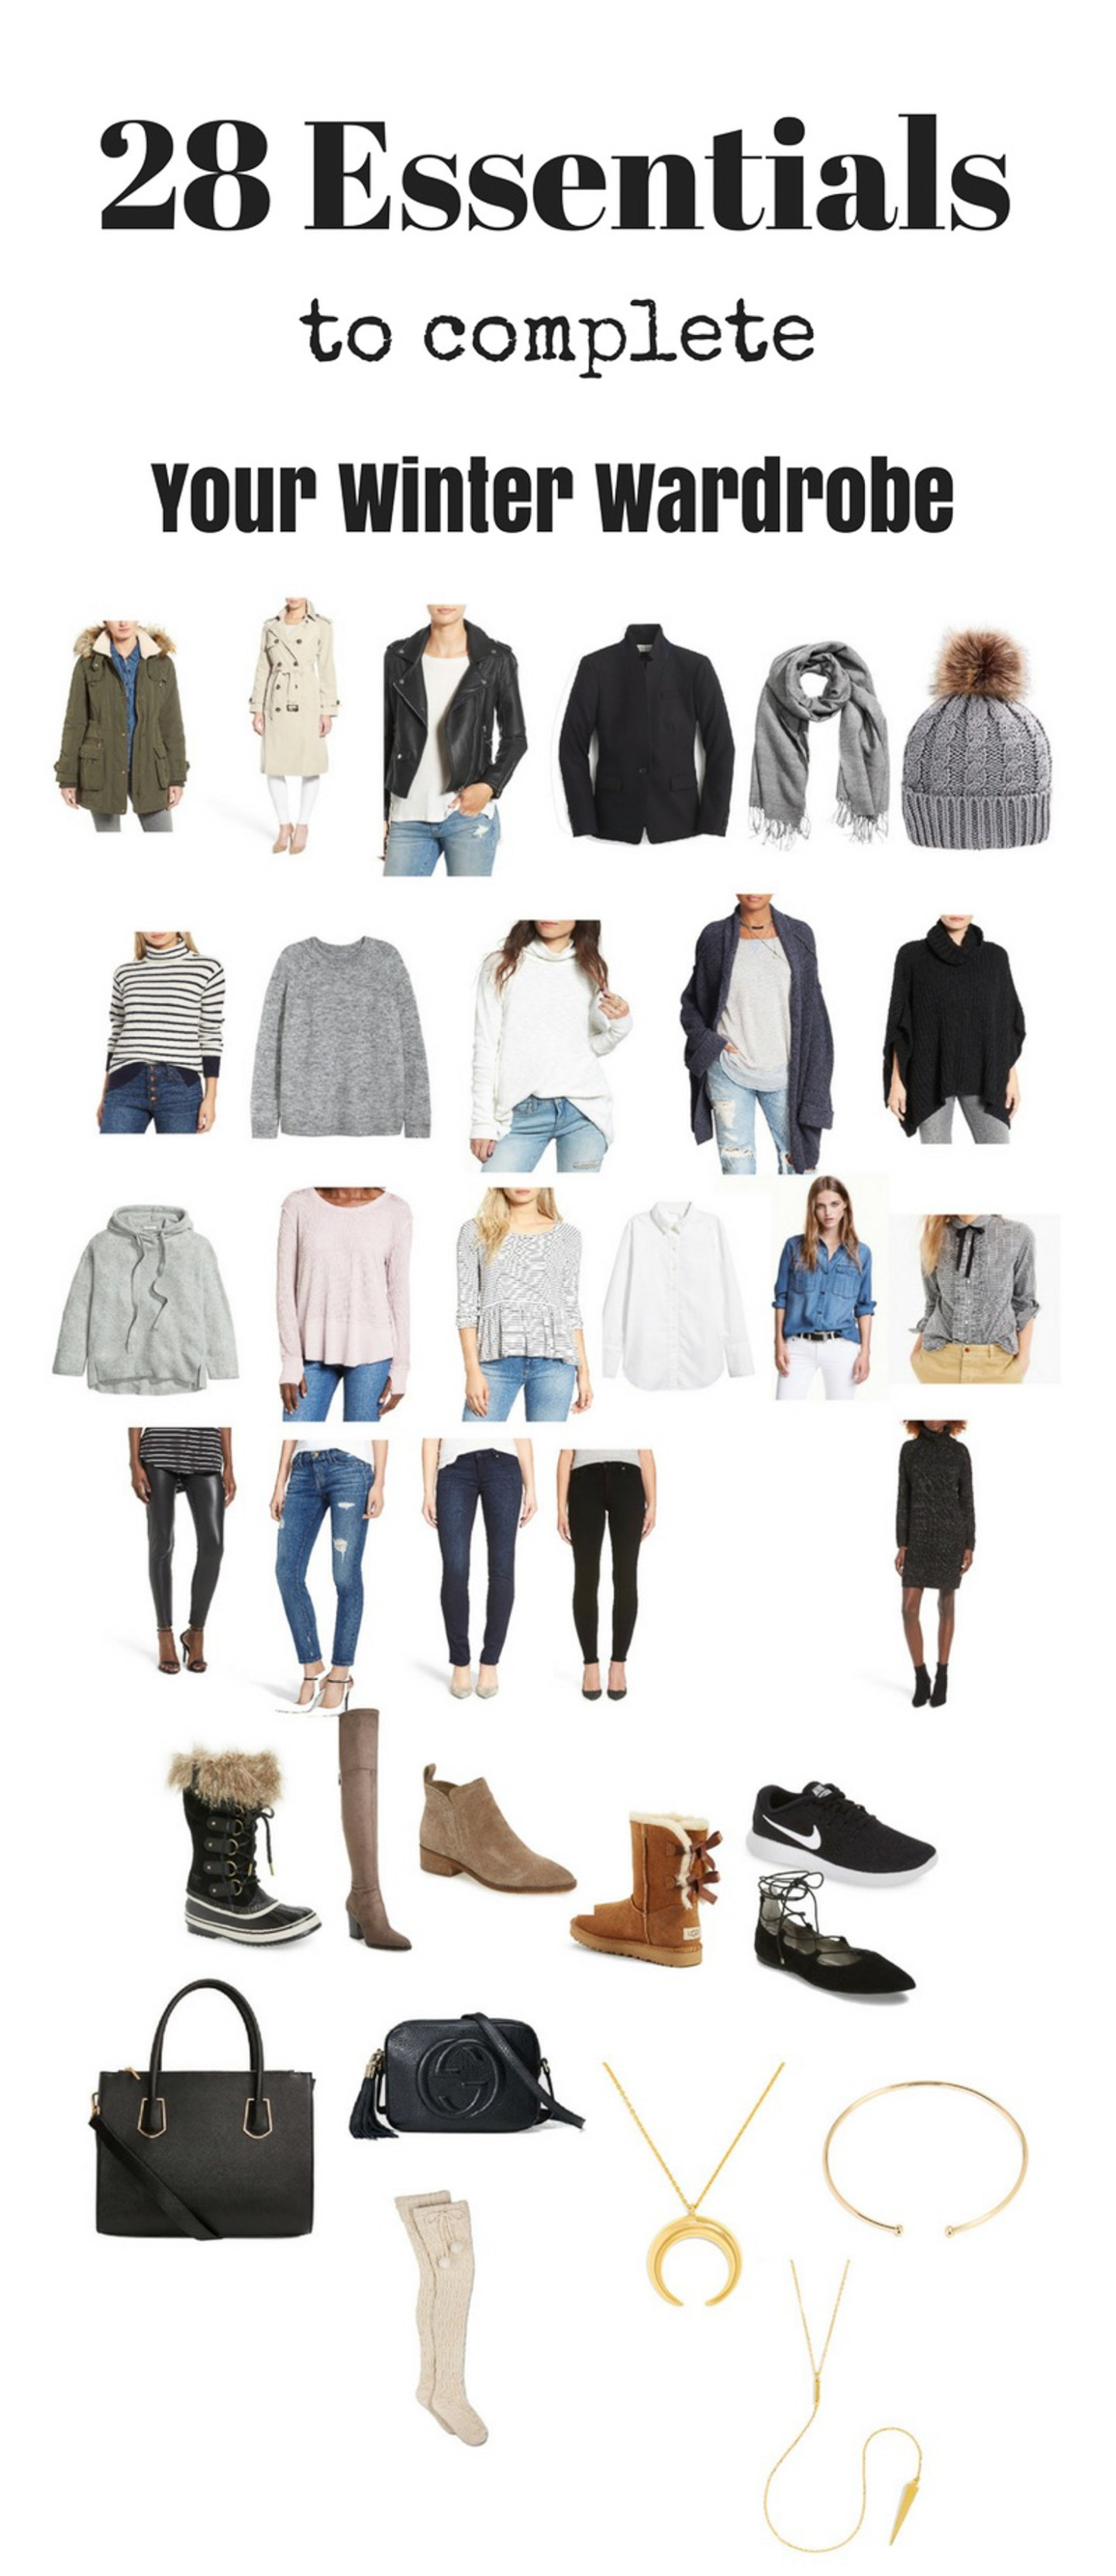 28-essentials-to-complete-your-winter-wardrobe